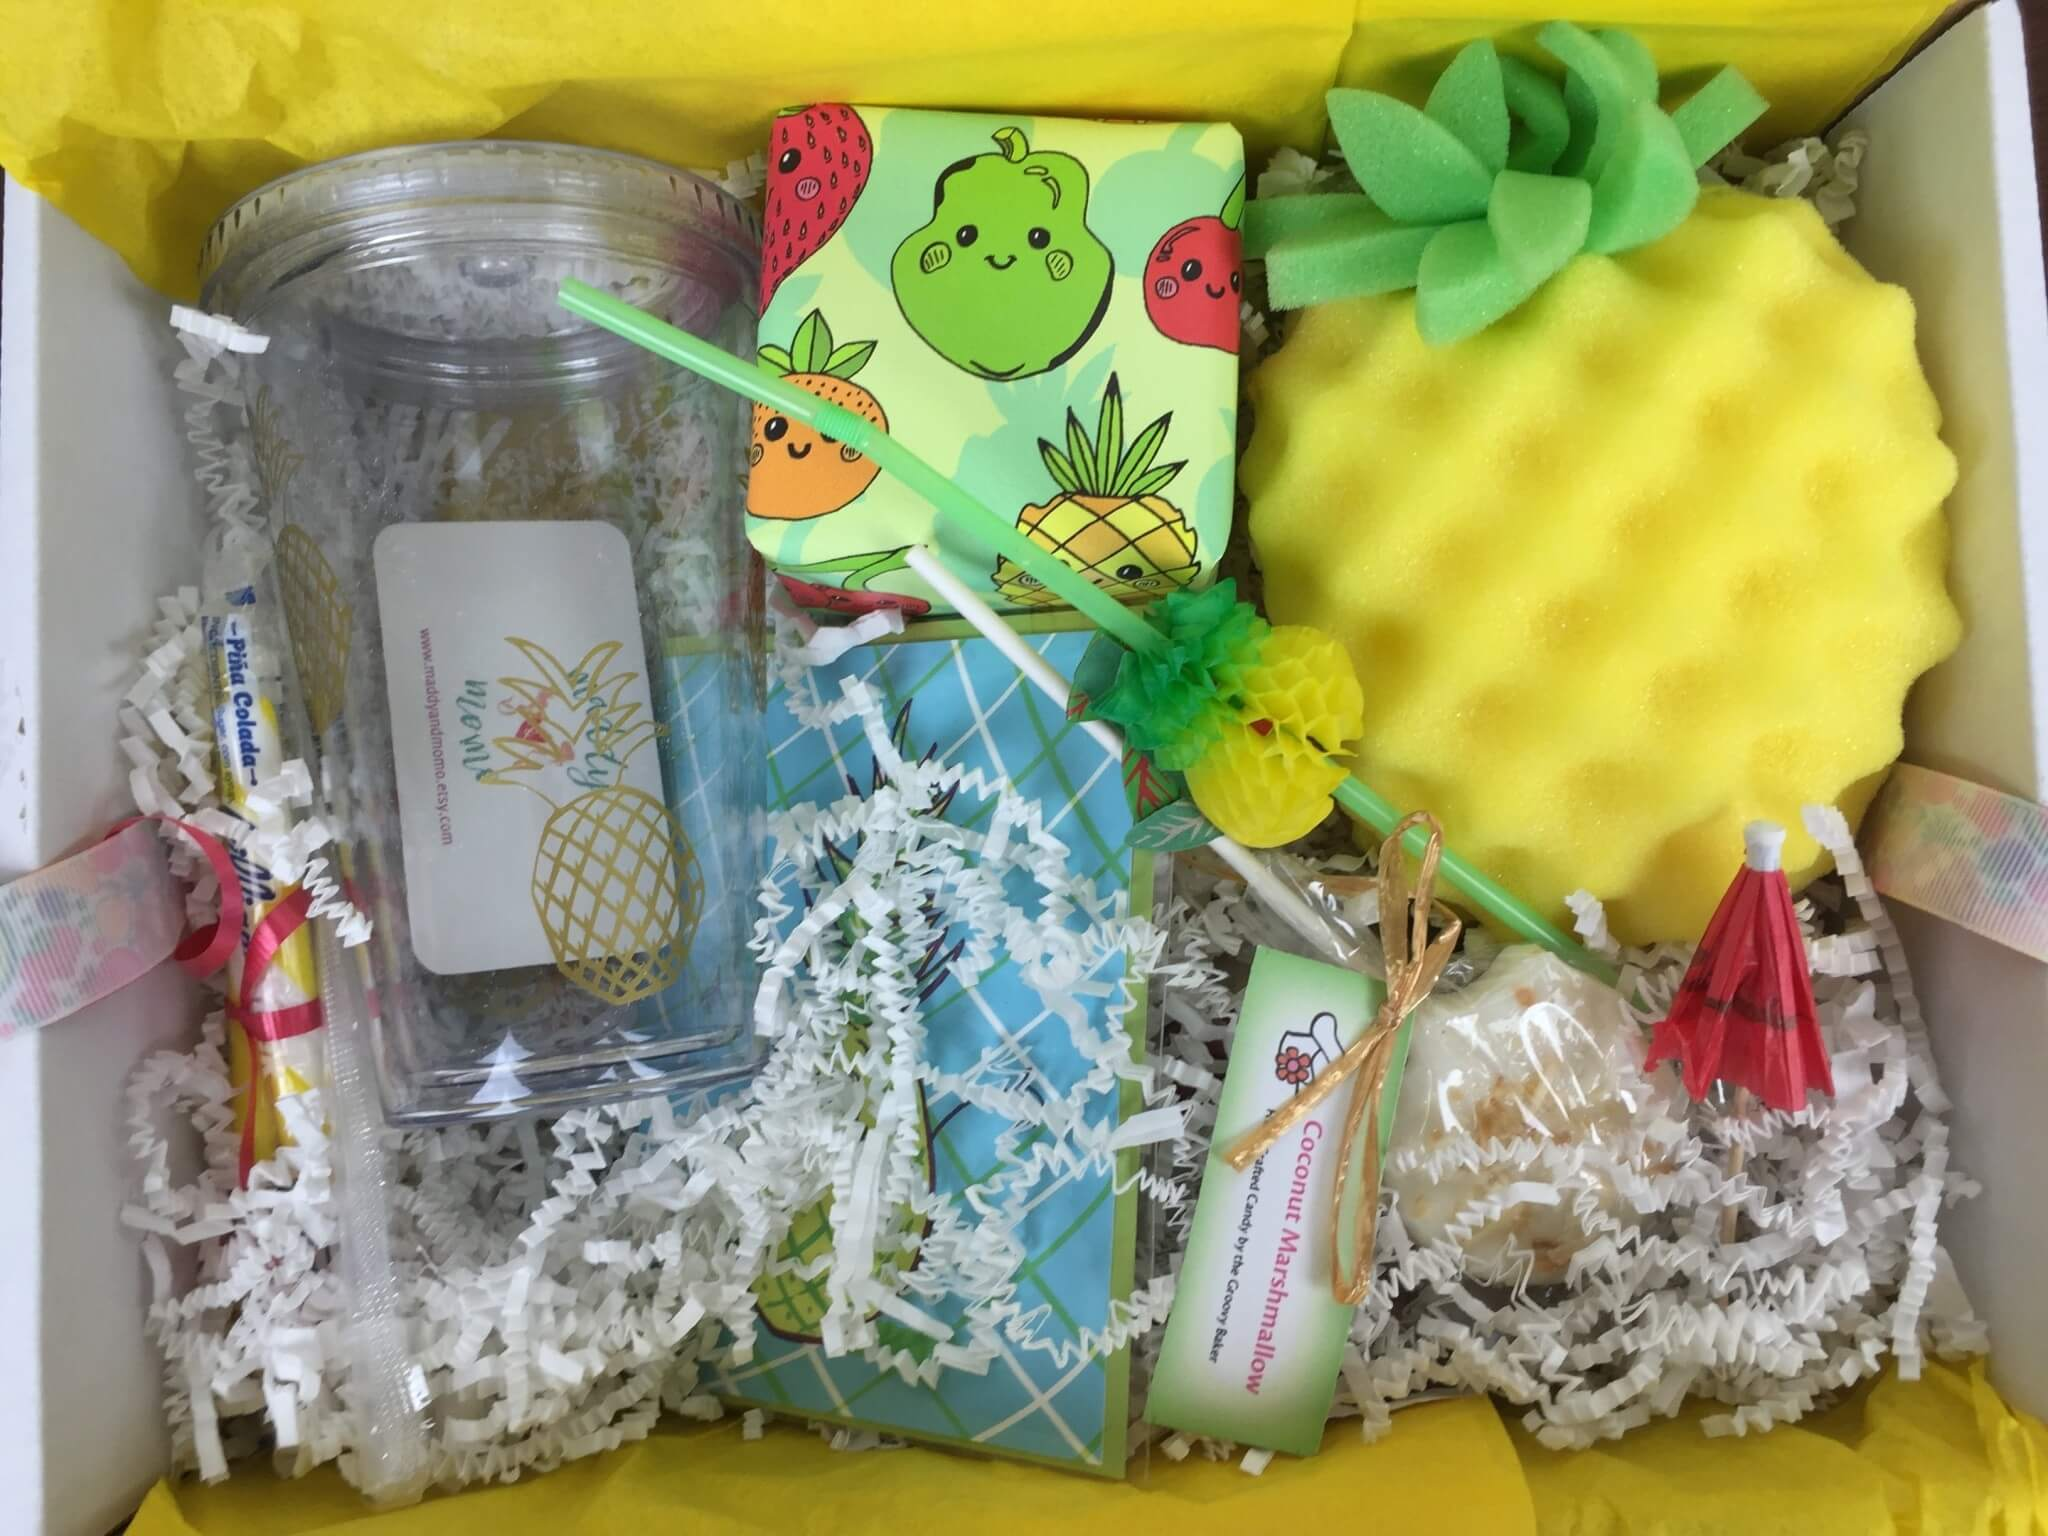 Fruit For Thought Box May-June 2016 unboxed